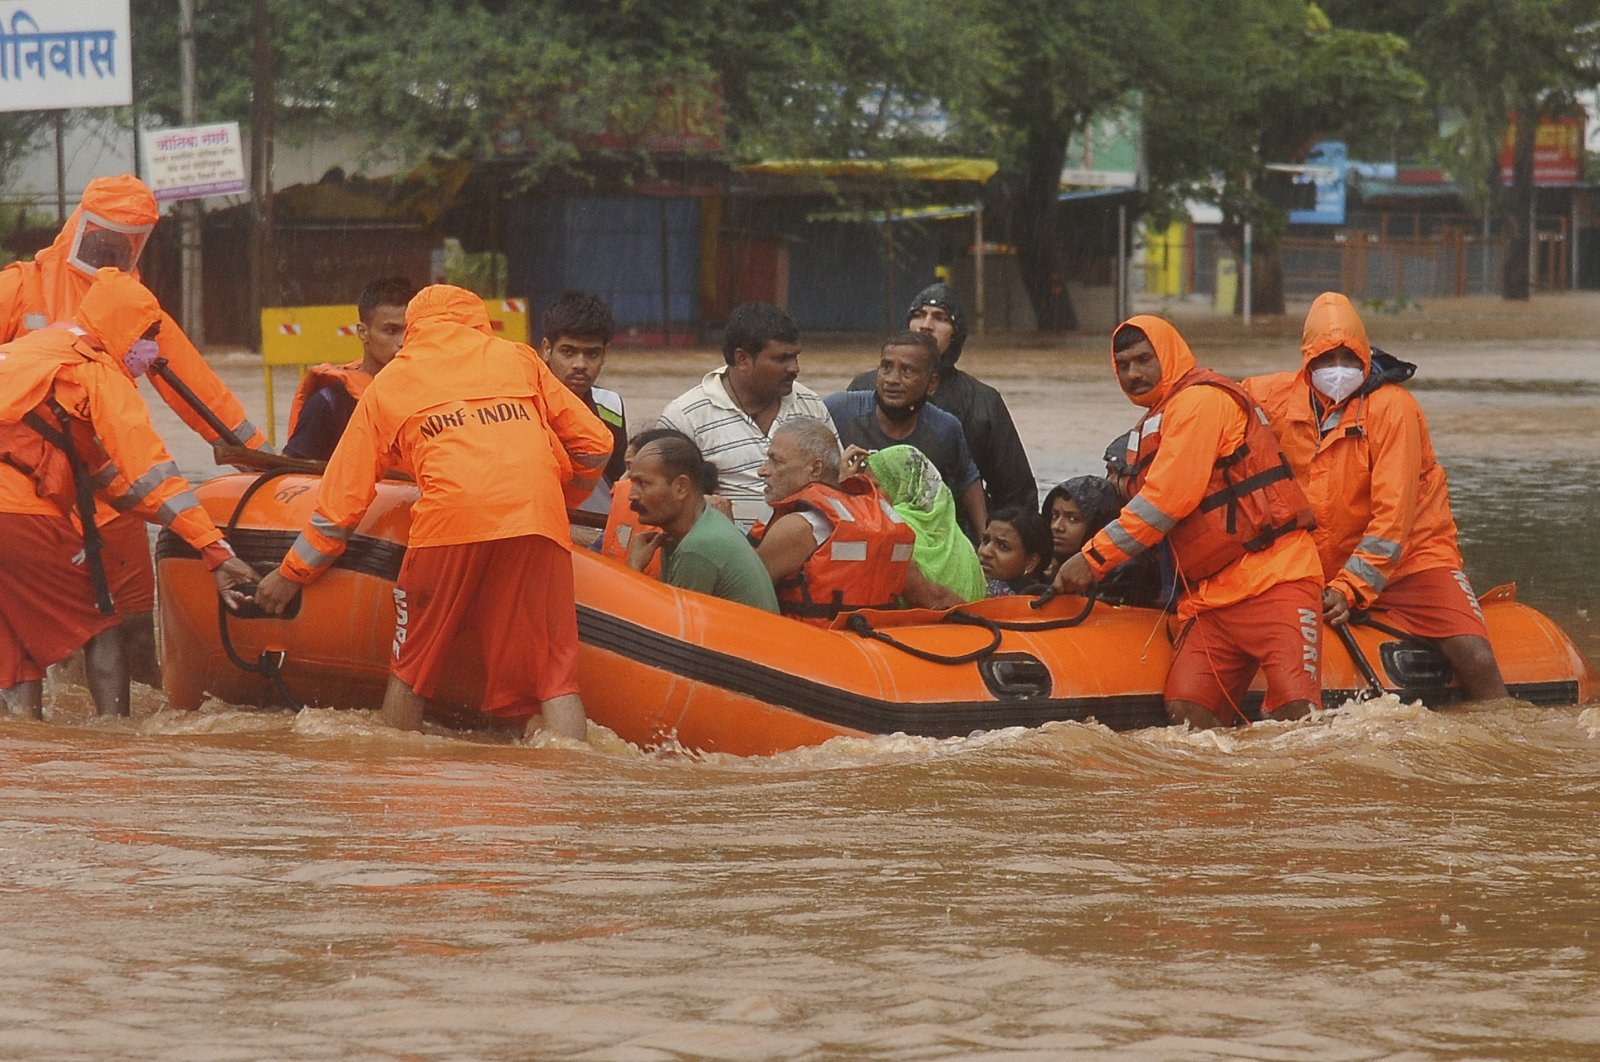 National Disaster Response Force personnel rescue people stranded in floodwaters in Kolhapur, in the western Indian state of Maharashtra, July 23, 2021. (AP Photo)